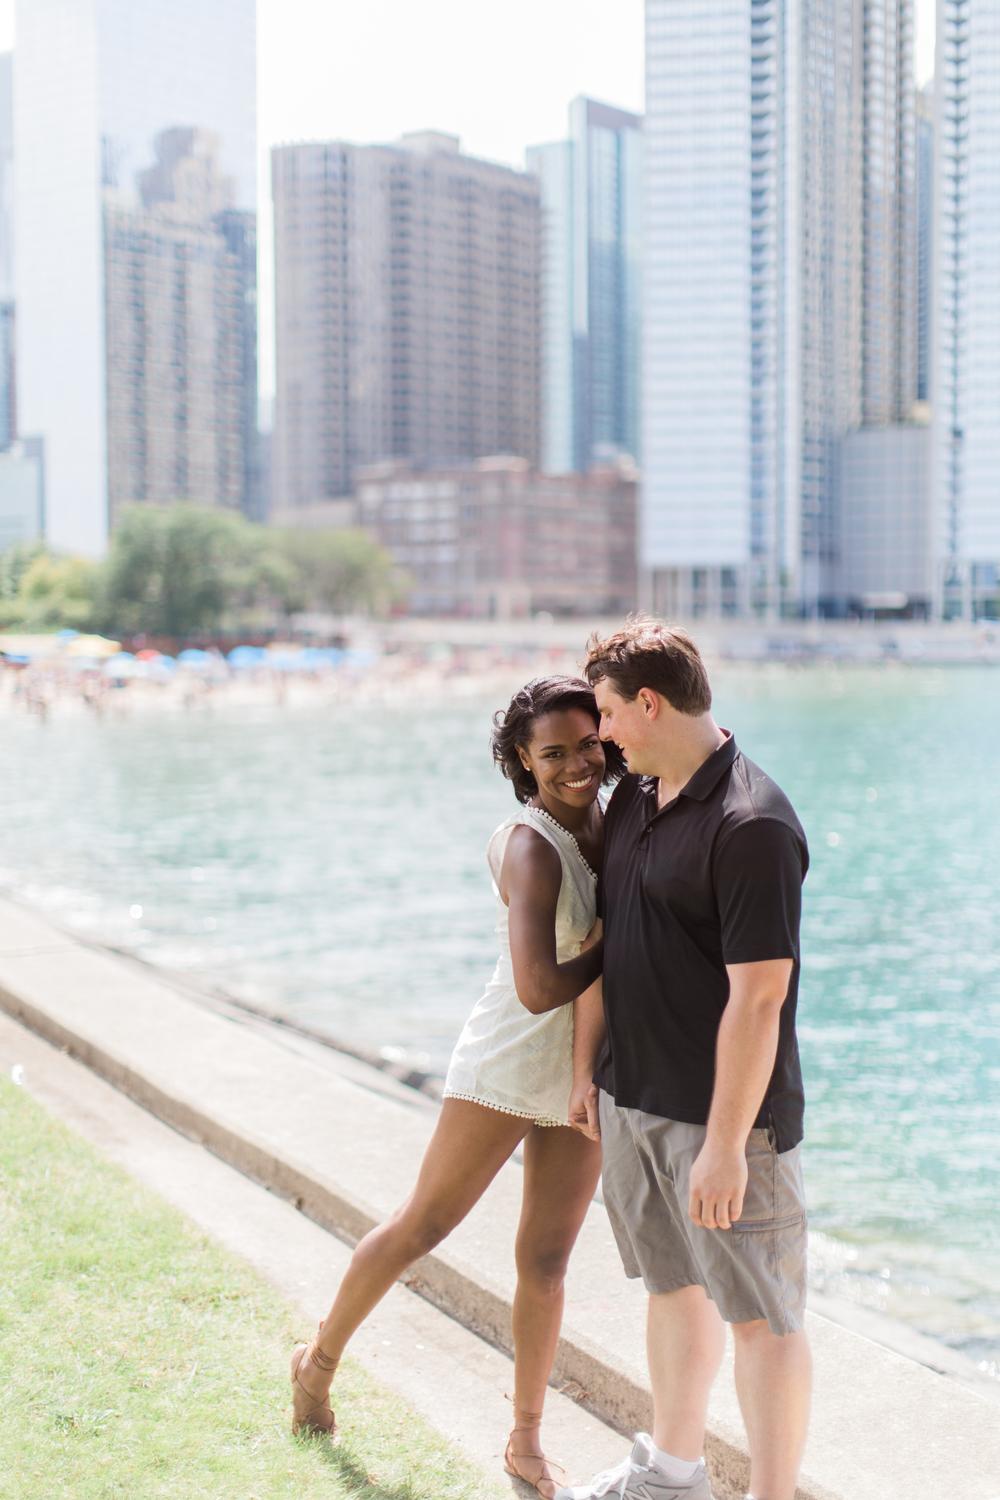 Bonphotage Chicago Engagement Photo